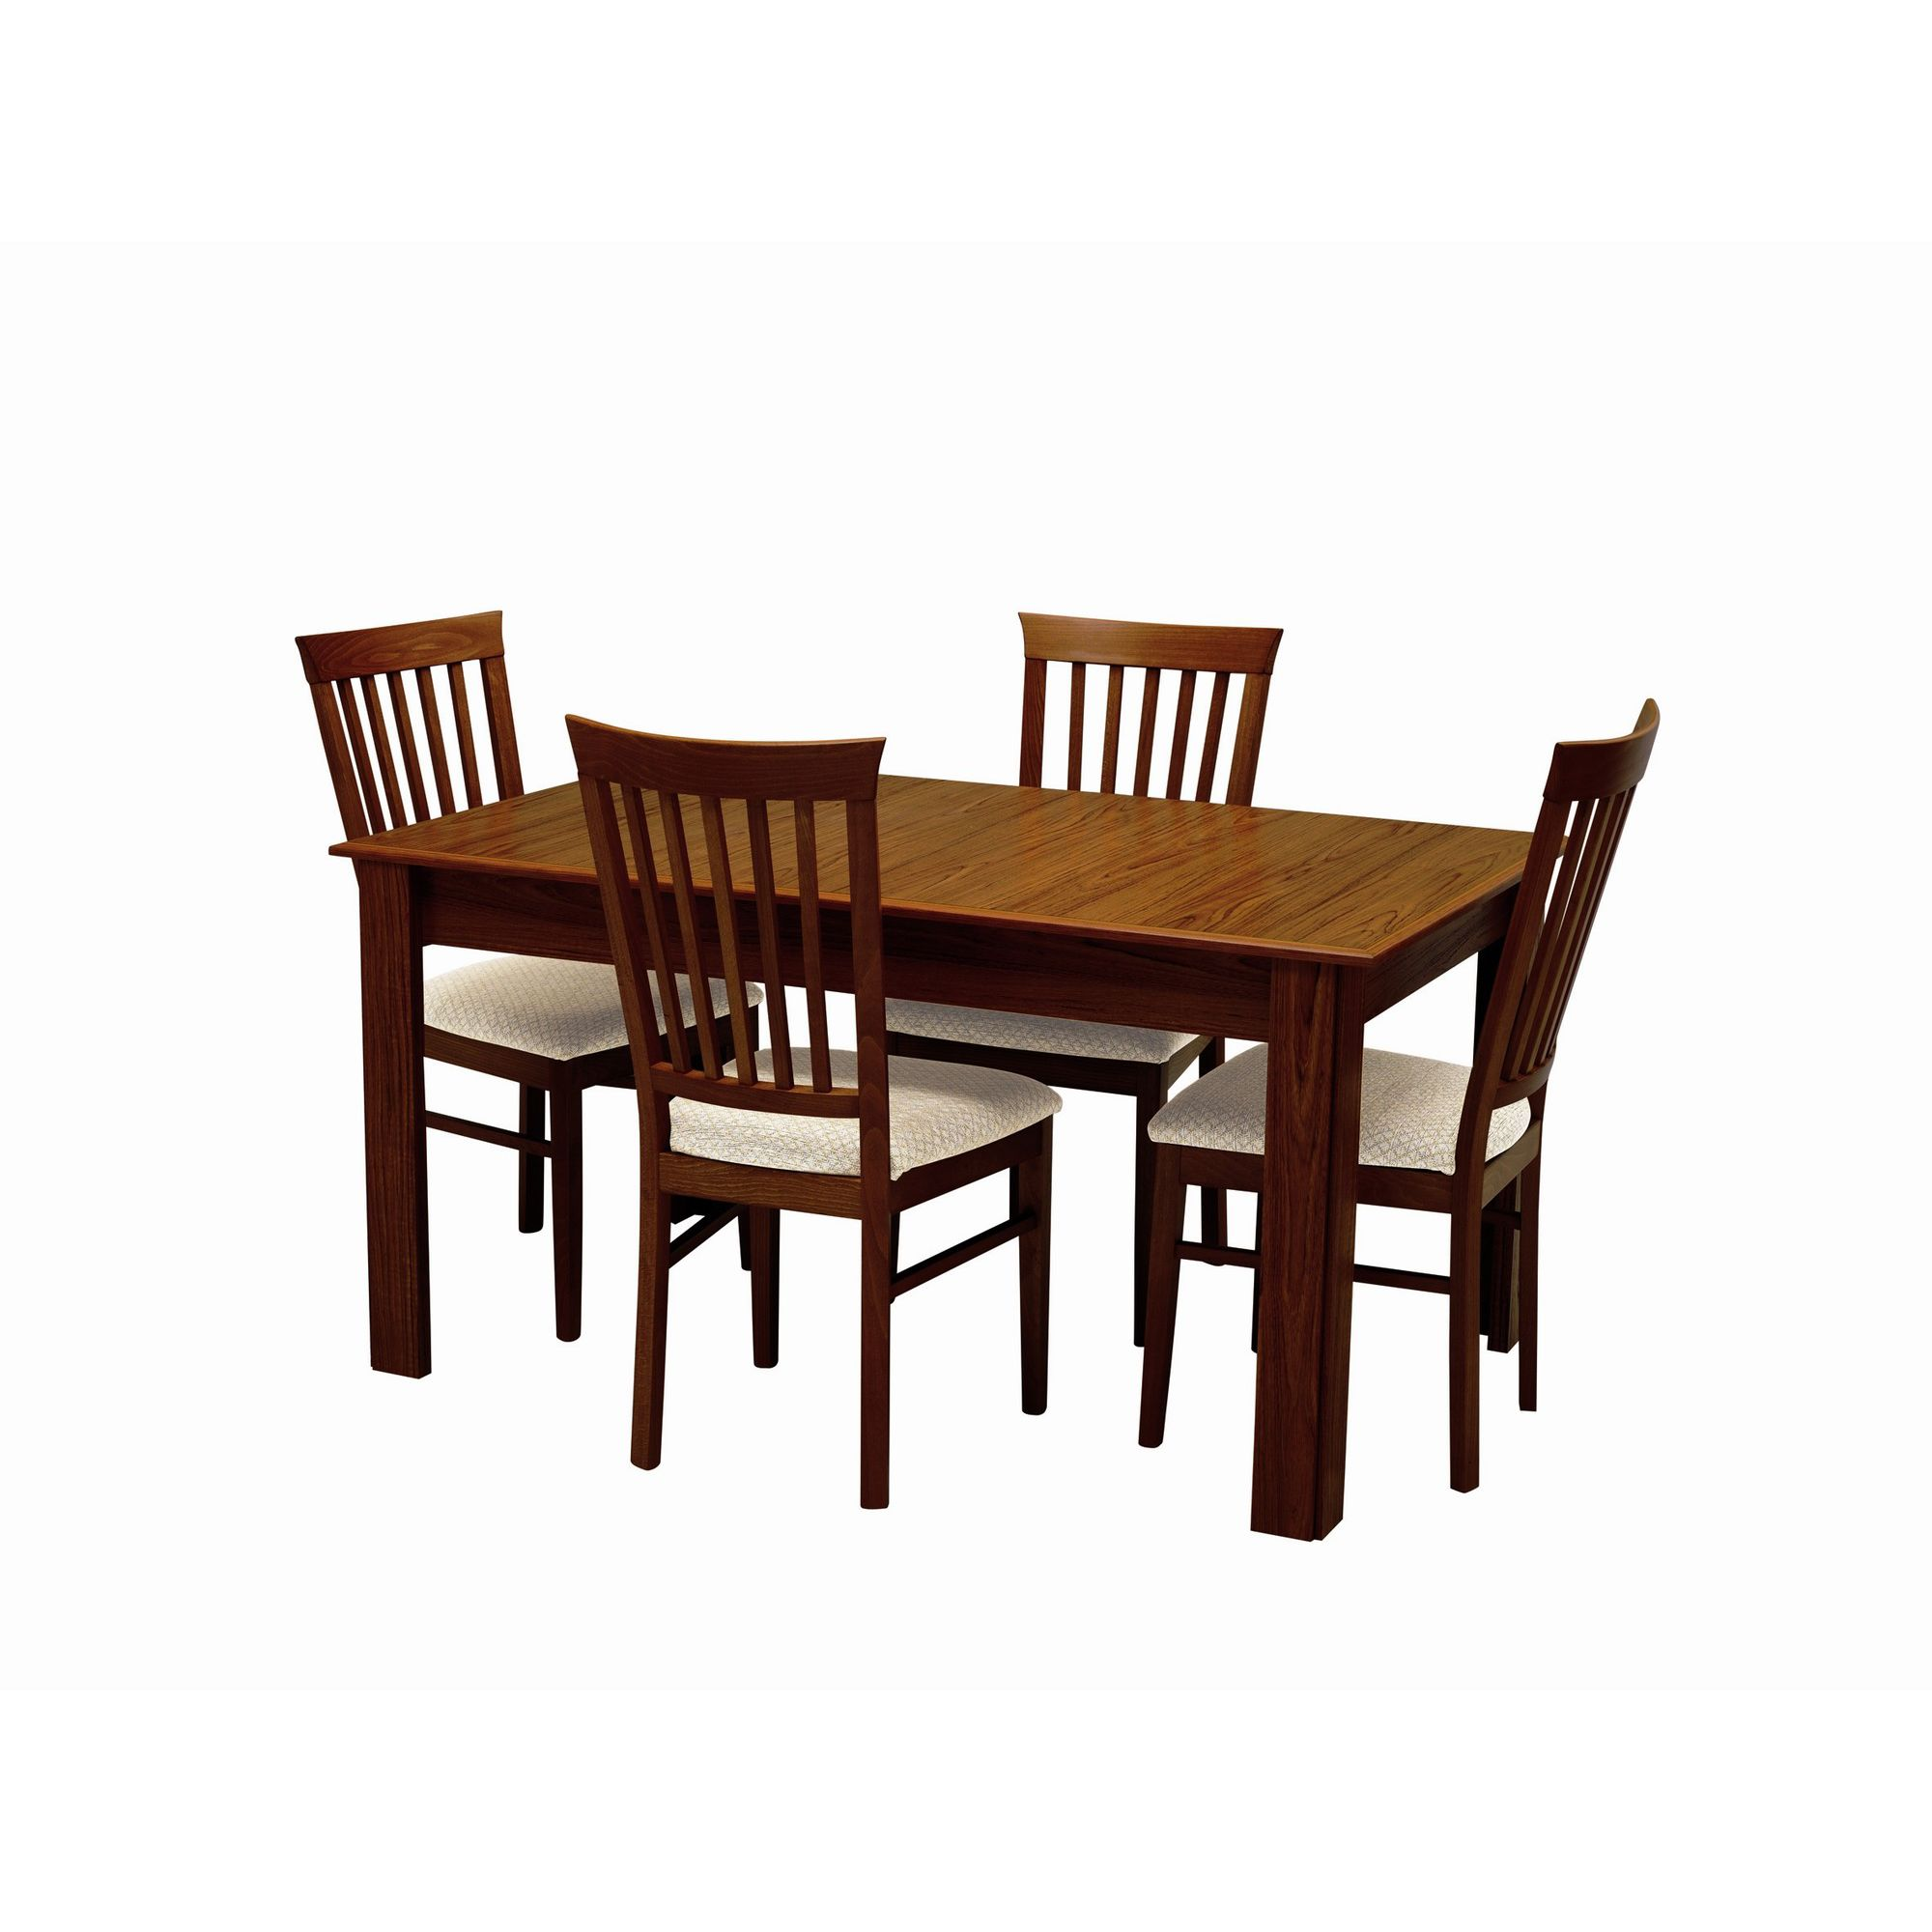 Caxton Byron Extending Dining Set with Slatted Back Dining Chairs in Mahogany - Oyster at Tesco Direct